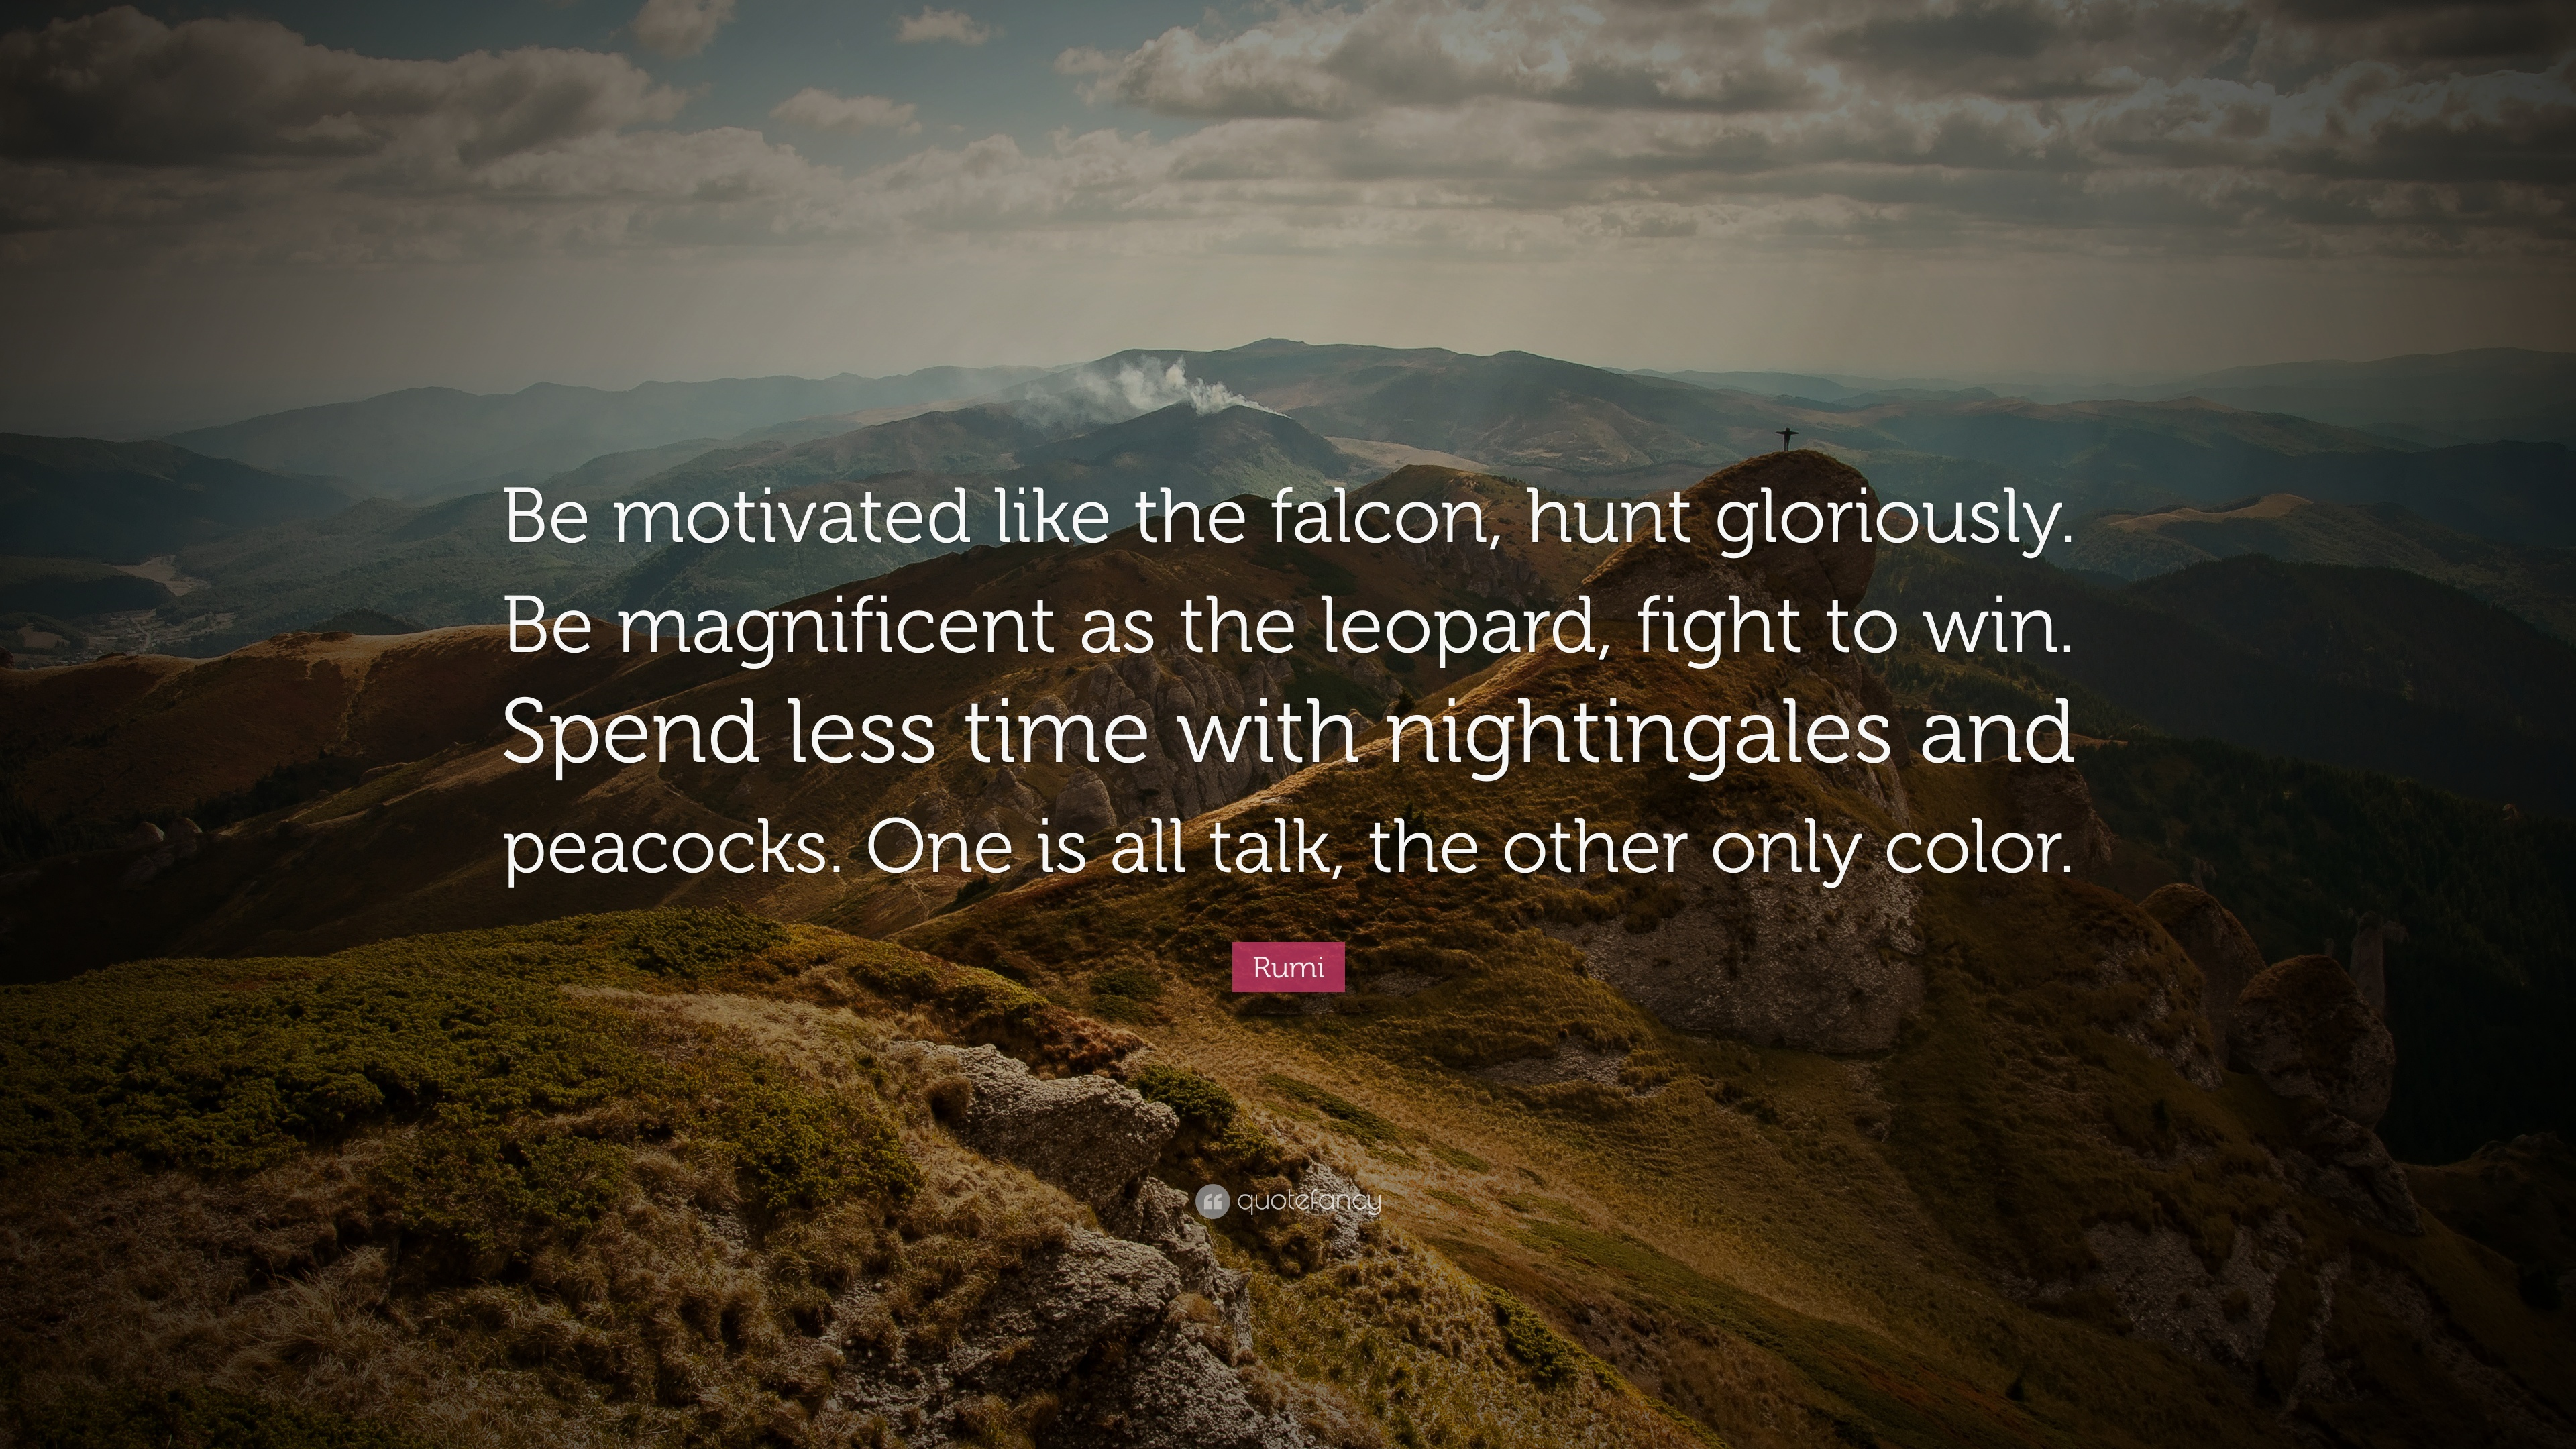 Conor Mcgregor Quote Wallpaper Rumi Quote Be Motivated Like The Falcon Hunt Gloriously